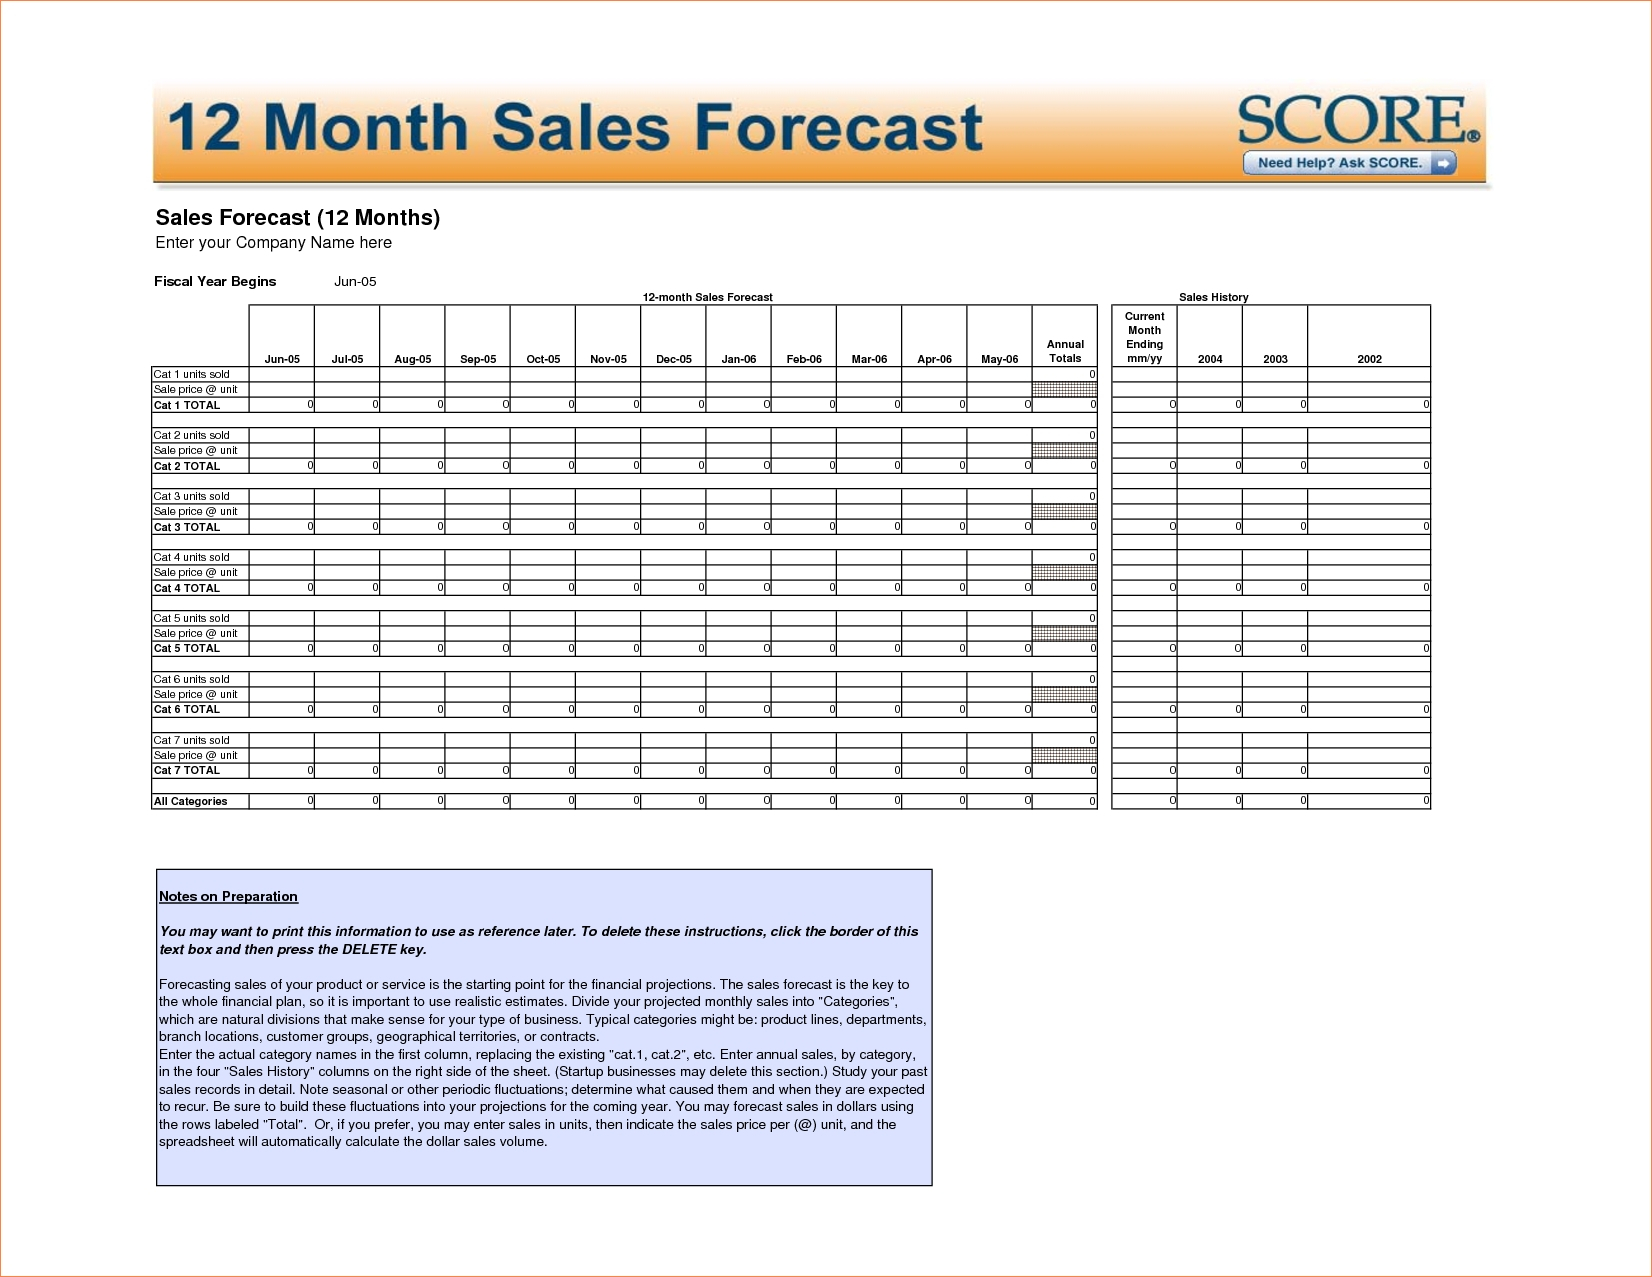 Sales Forecast Spreadsheet Template Sales Forecast Spreadsheet Inside Forecast Spreadsheet Template